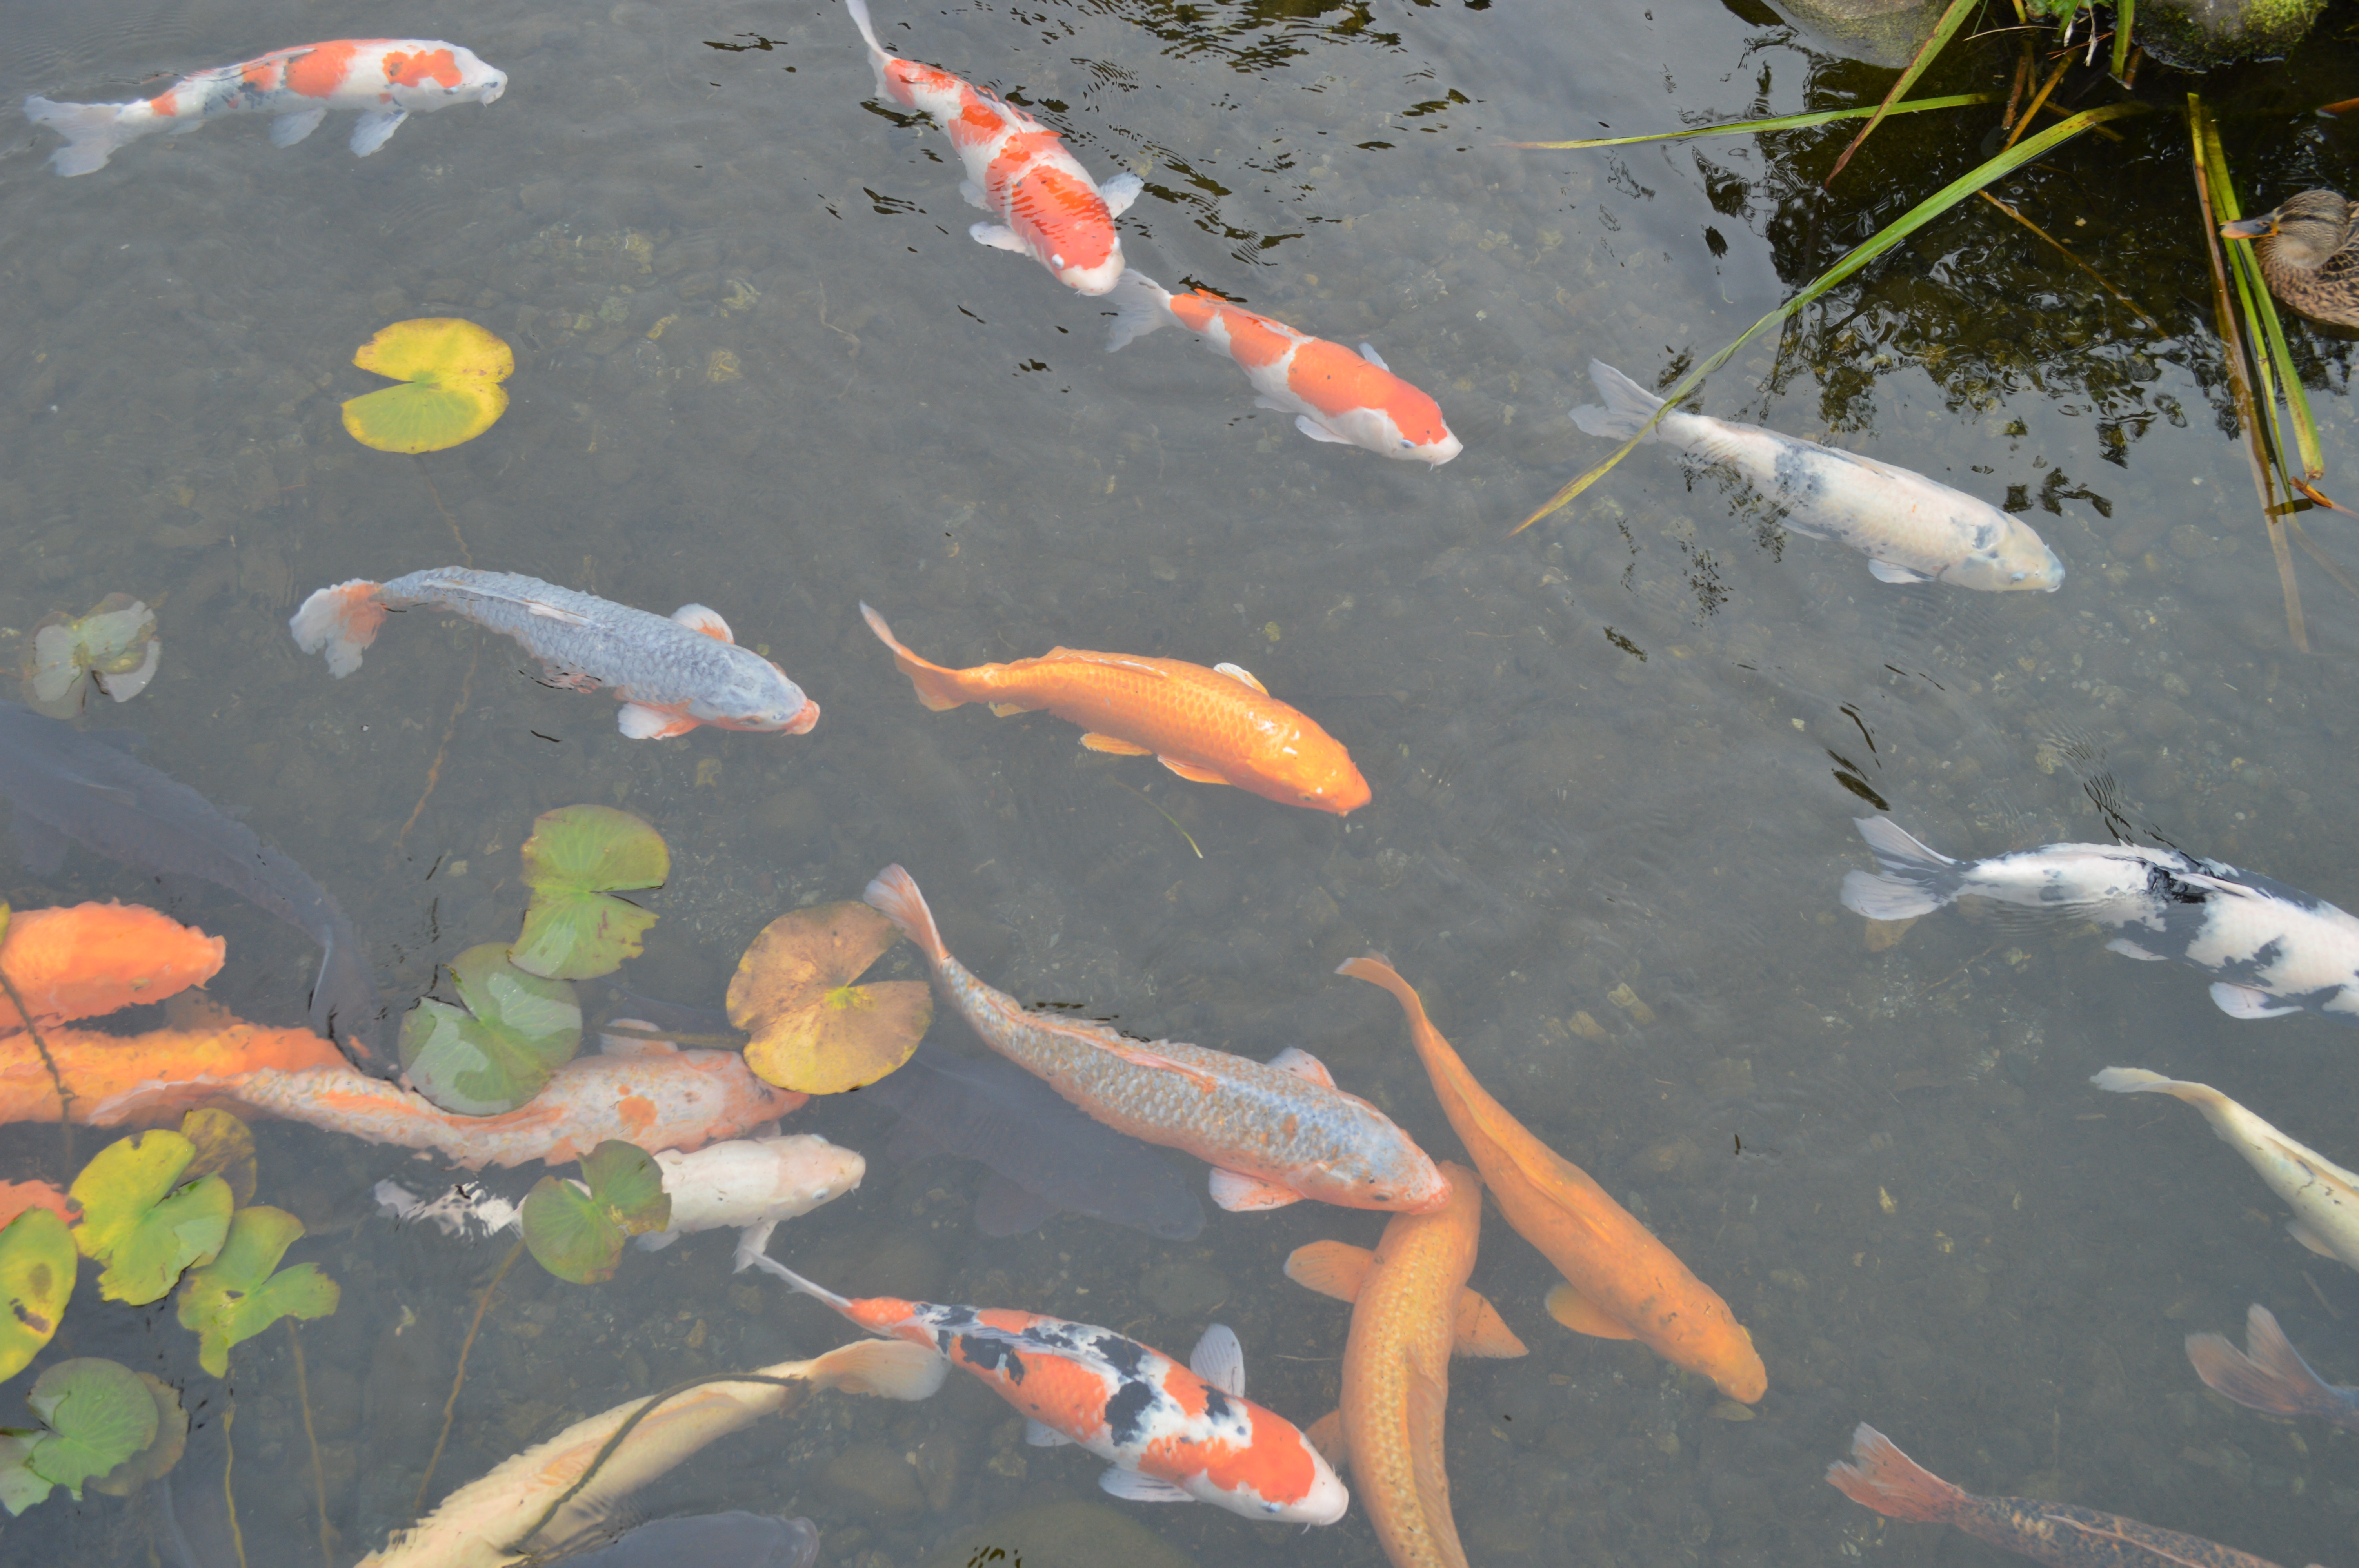 The garden also has a wonderful collection of Japanese carp.